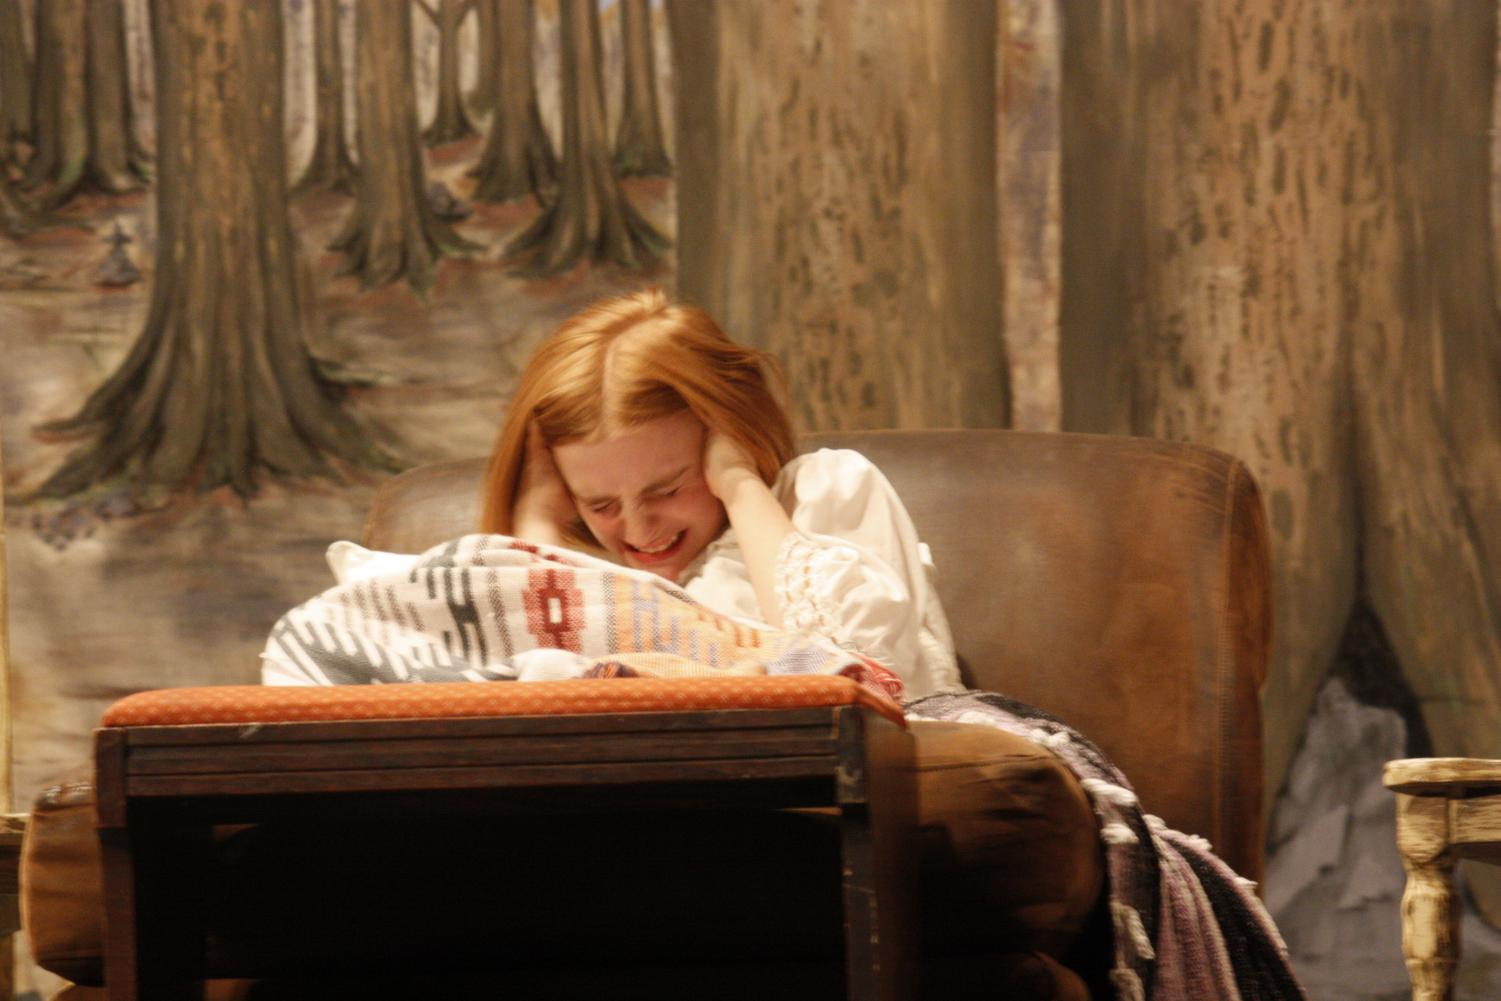 Betty Parris (Sarah Thompson) in distress at the beginning of Act 1.